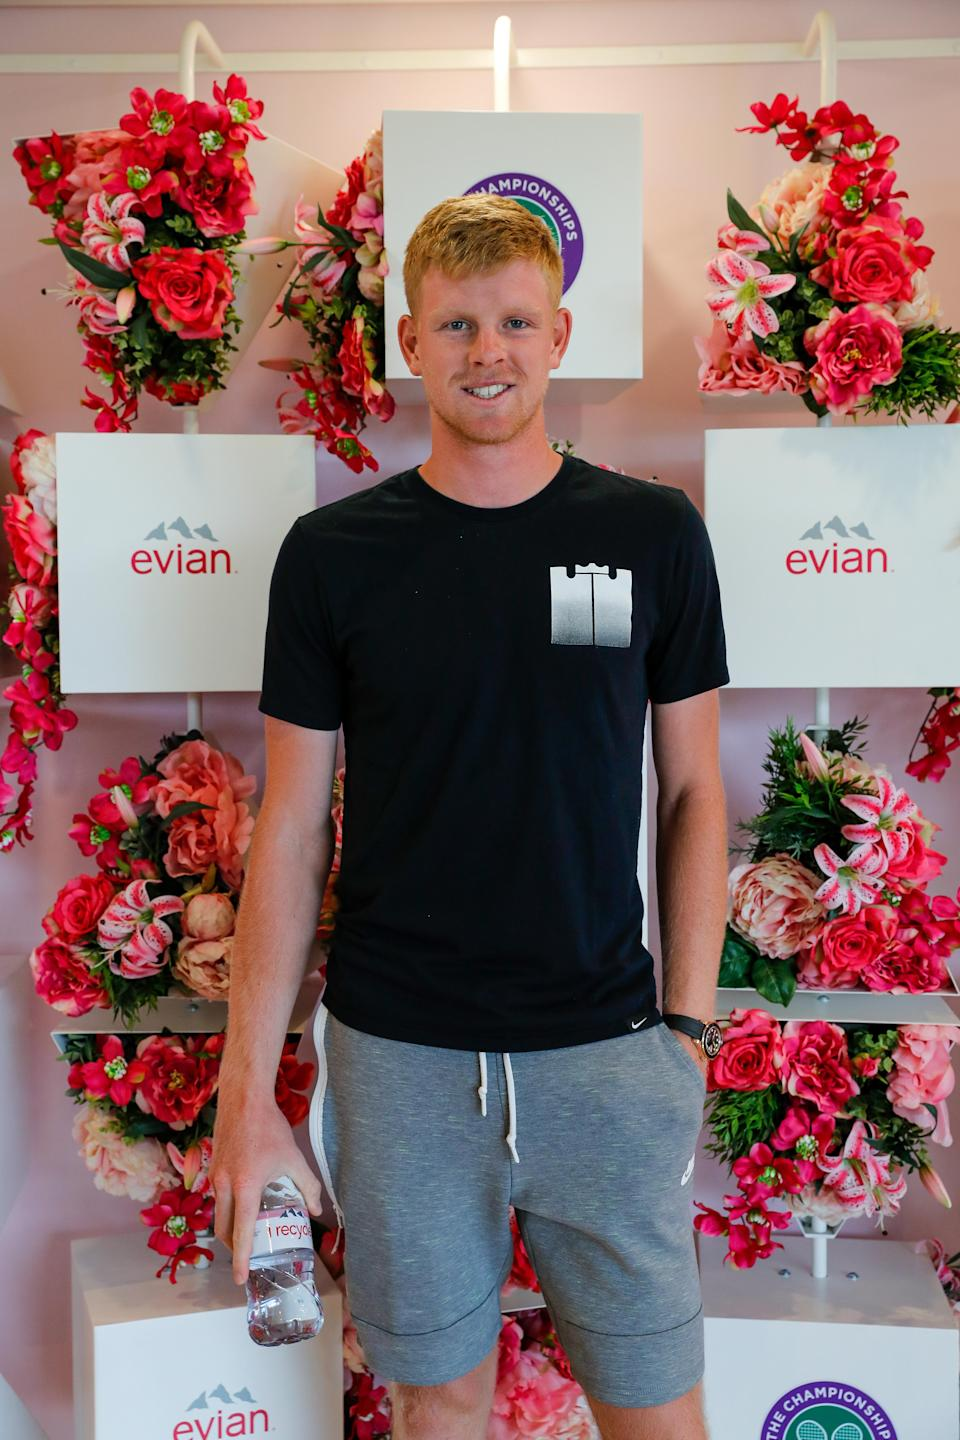 Kyle Edmund is helping evian reward key workers with Wimbledon tickets